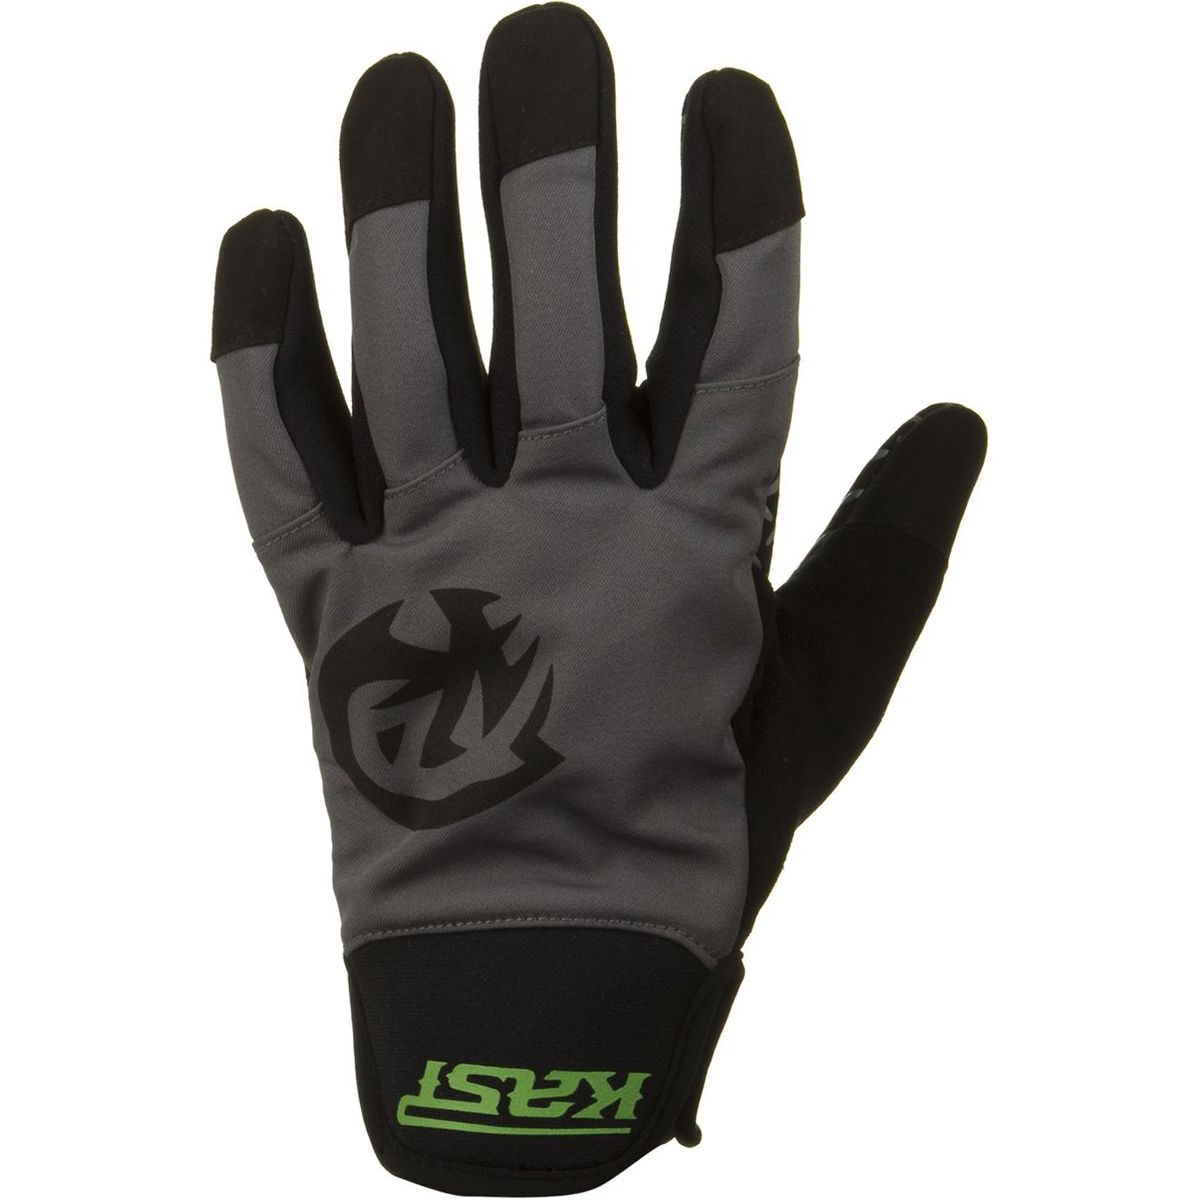 Kast Gear Raptor Glove Slate Grey Black S